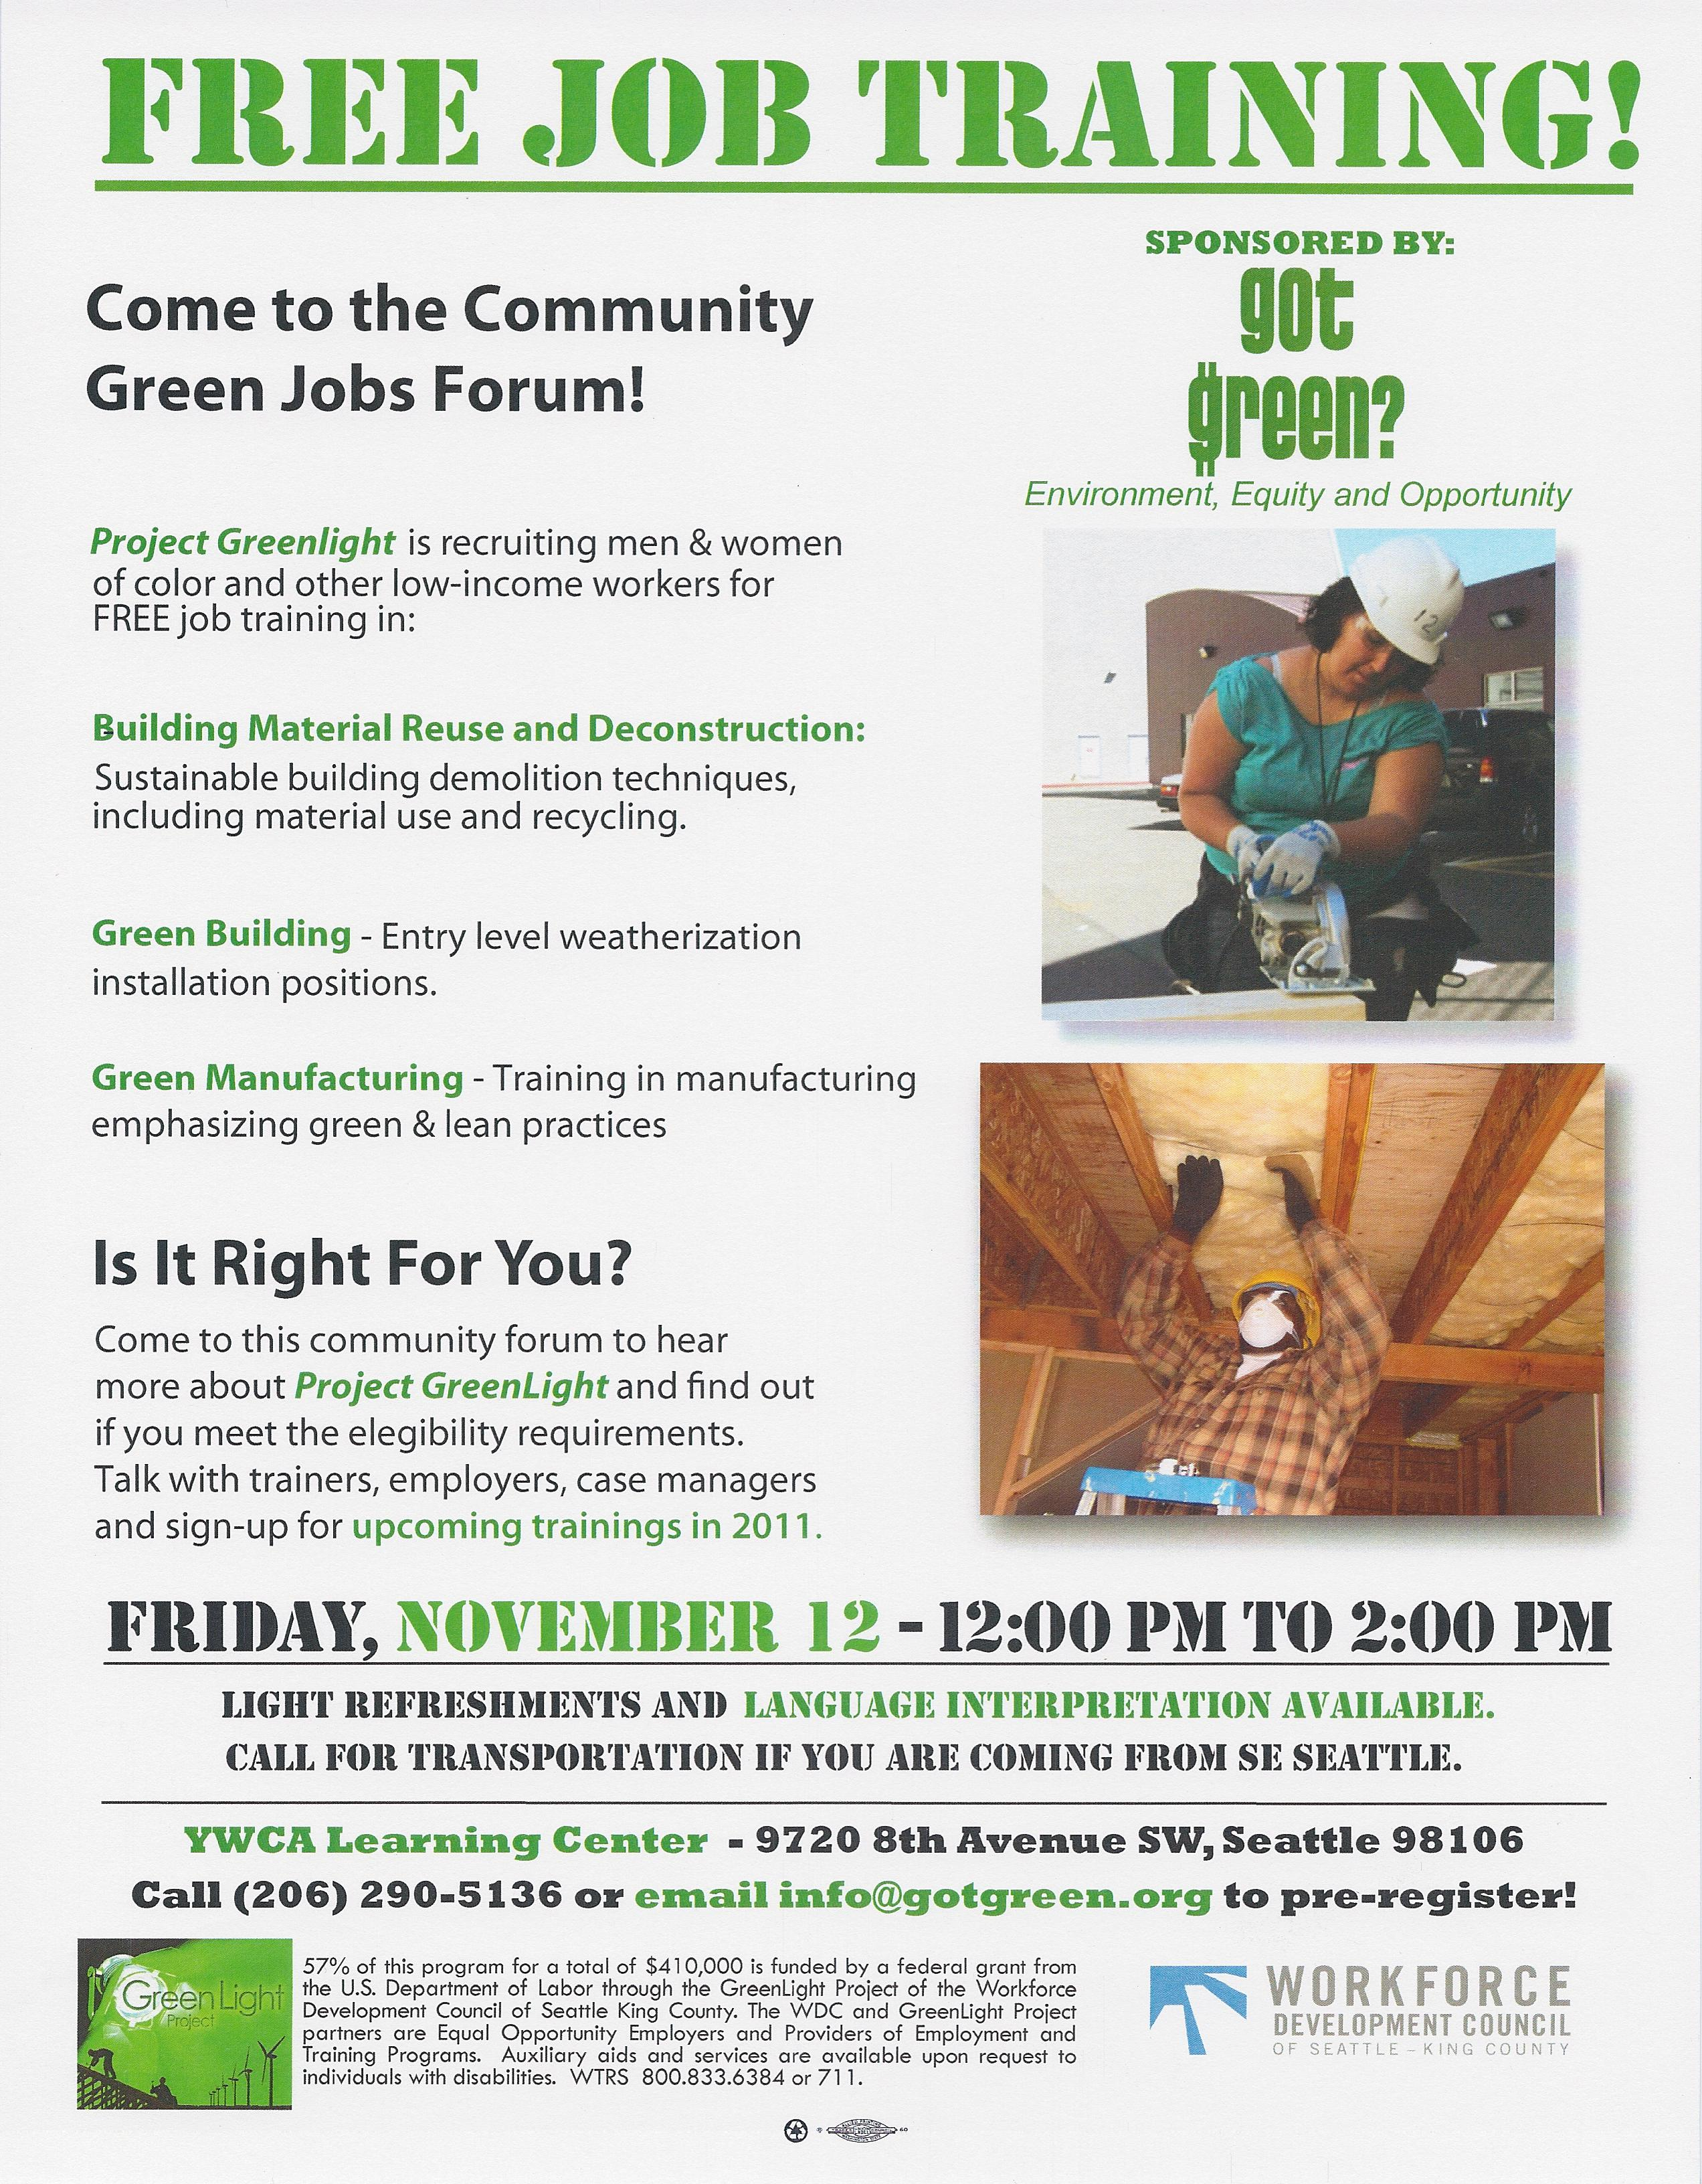 Community Green Jobs Forum in White Center, November 12!